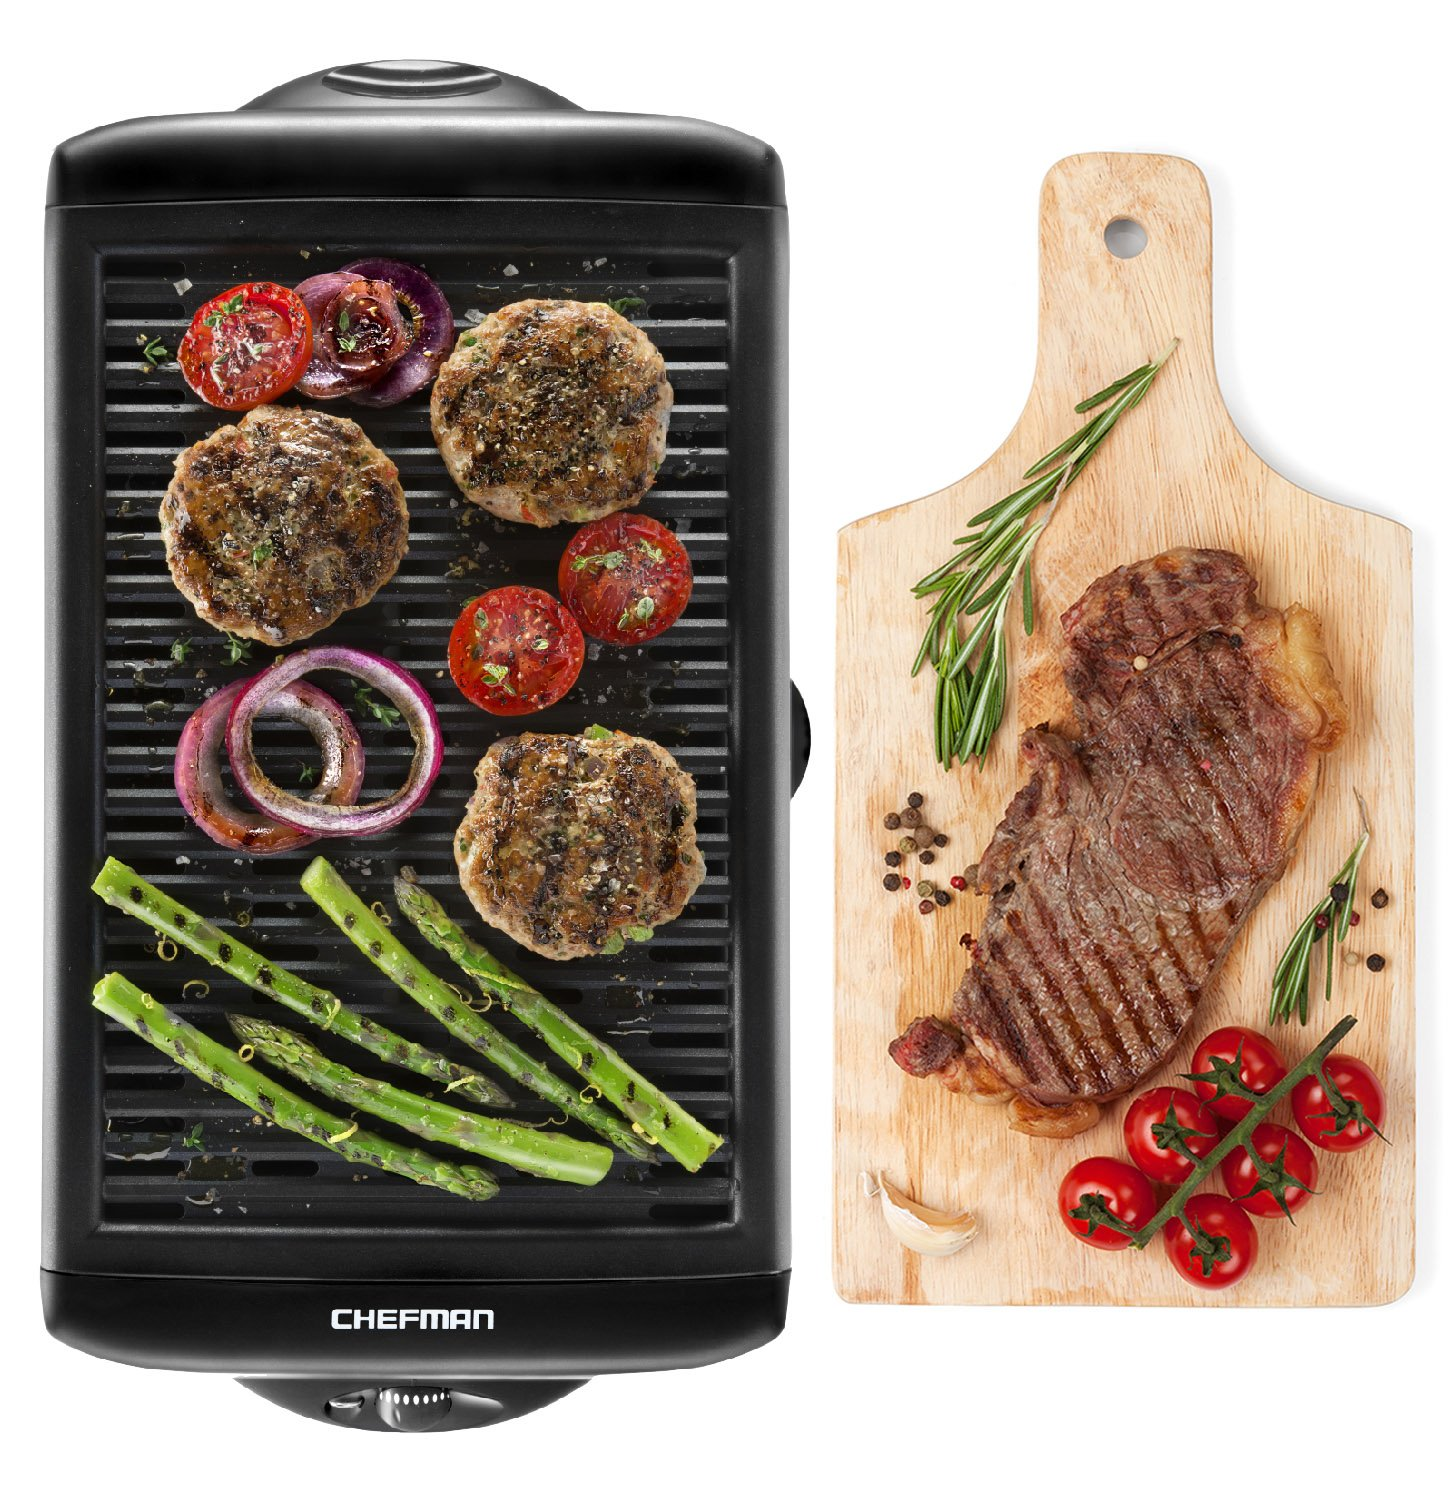 Chefman Electric Smokeless Indoor Grill - Griddle w/Non-Stick Cooking Surface and Adjustable Temperature Knob from Warm to Sear for Customized Grilling, Dishwasher Safe Removable Drip Tray, Black by Chefman